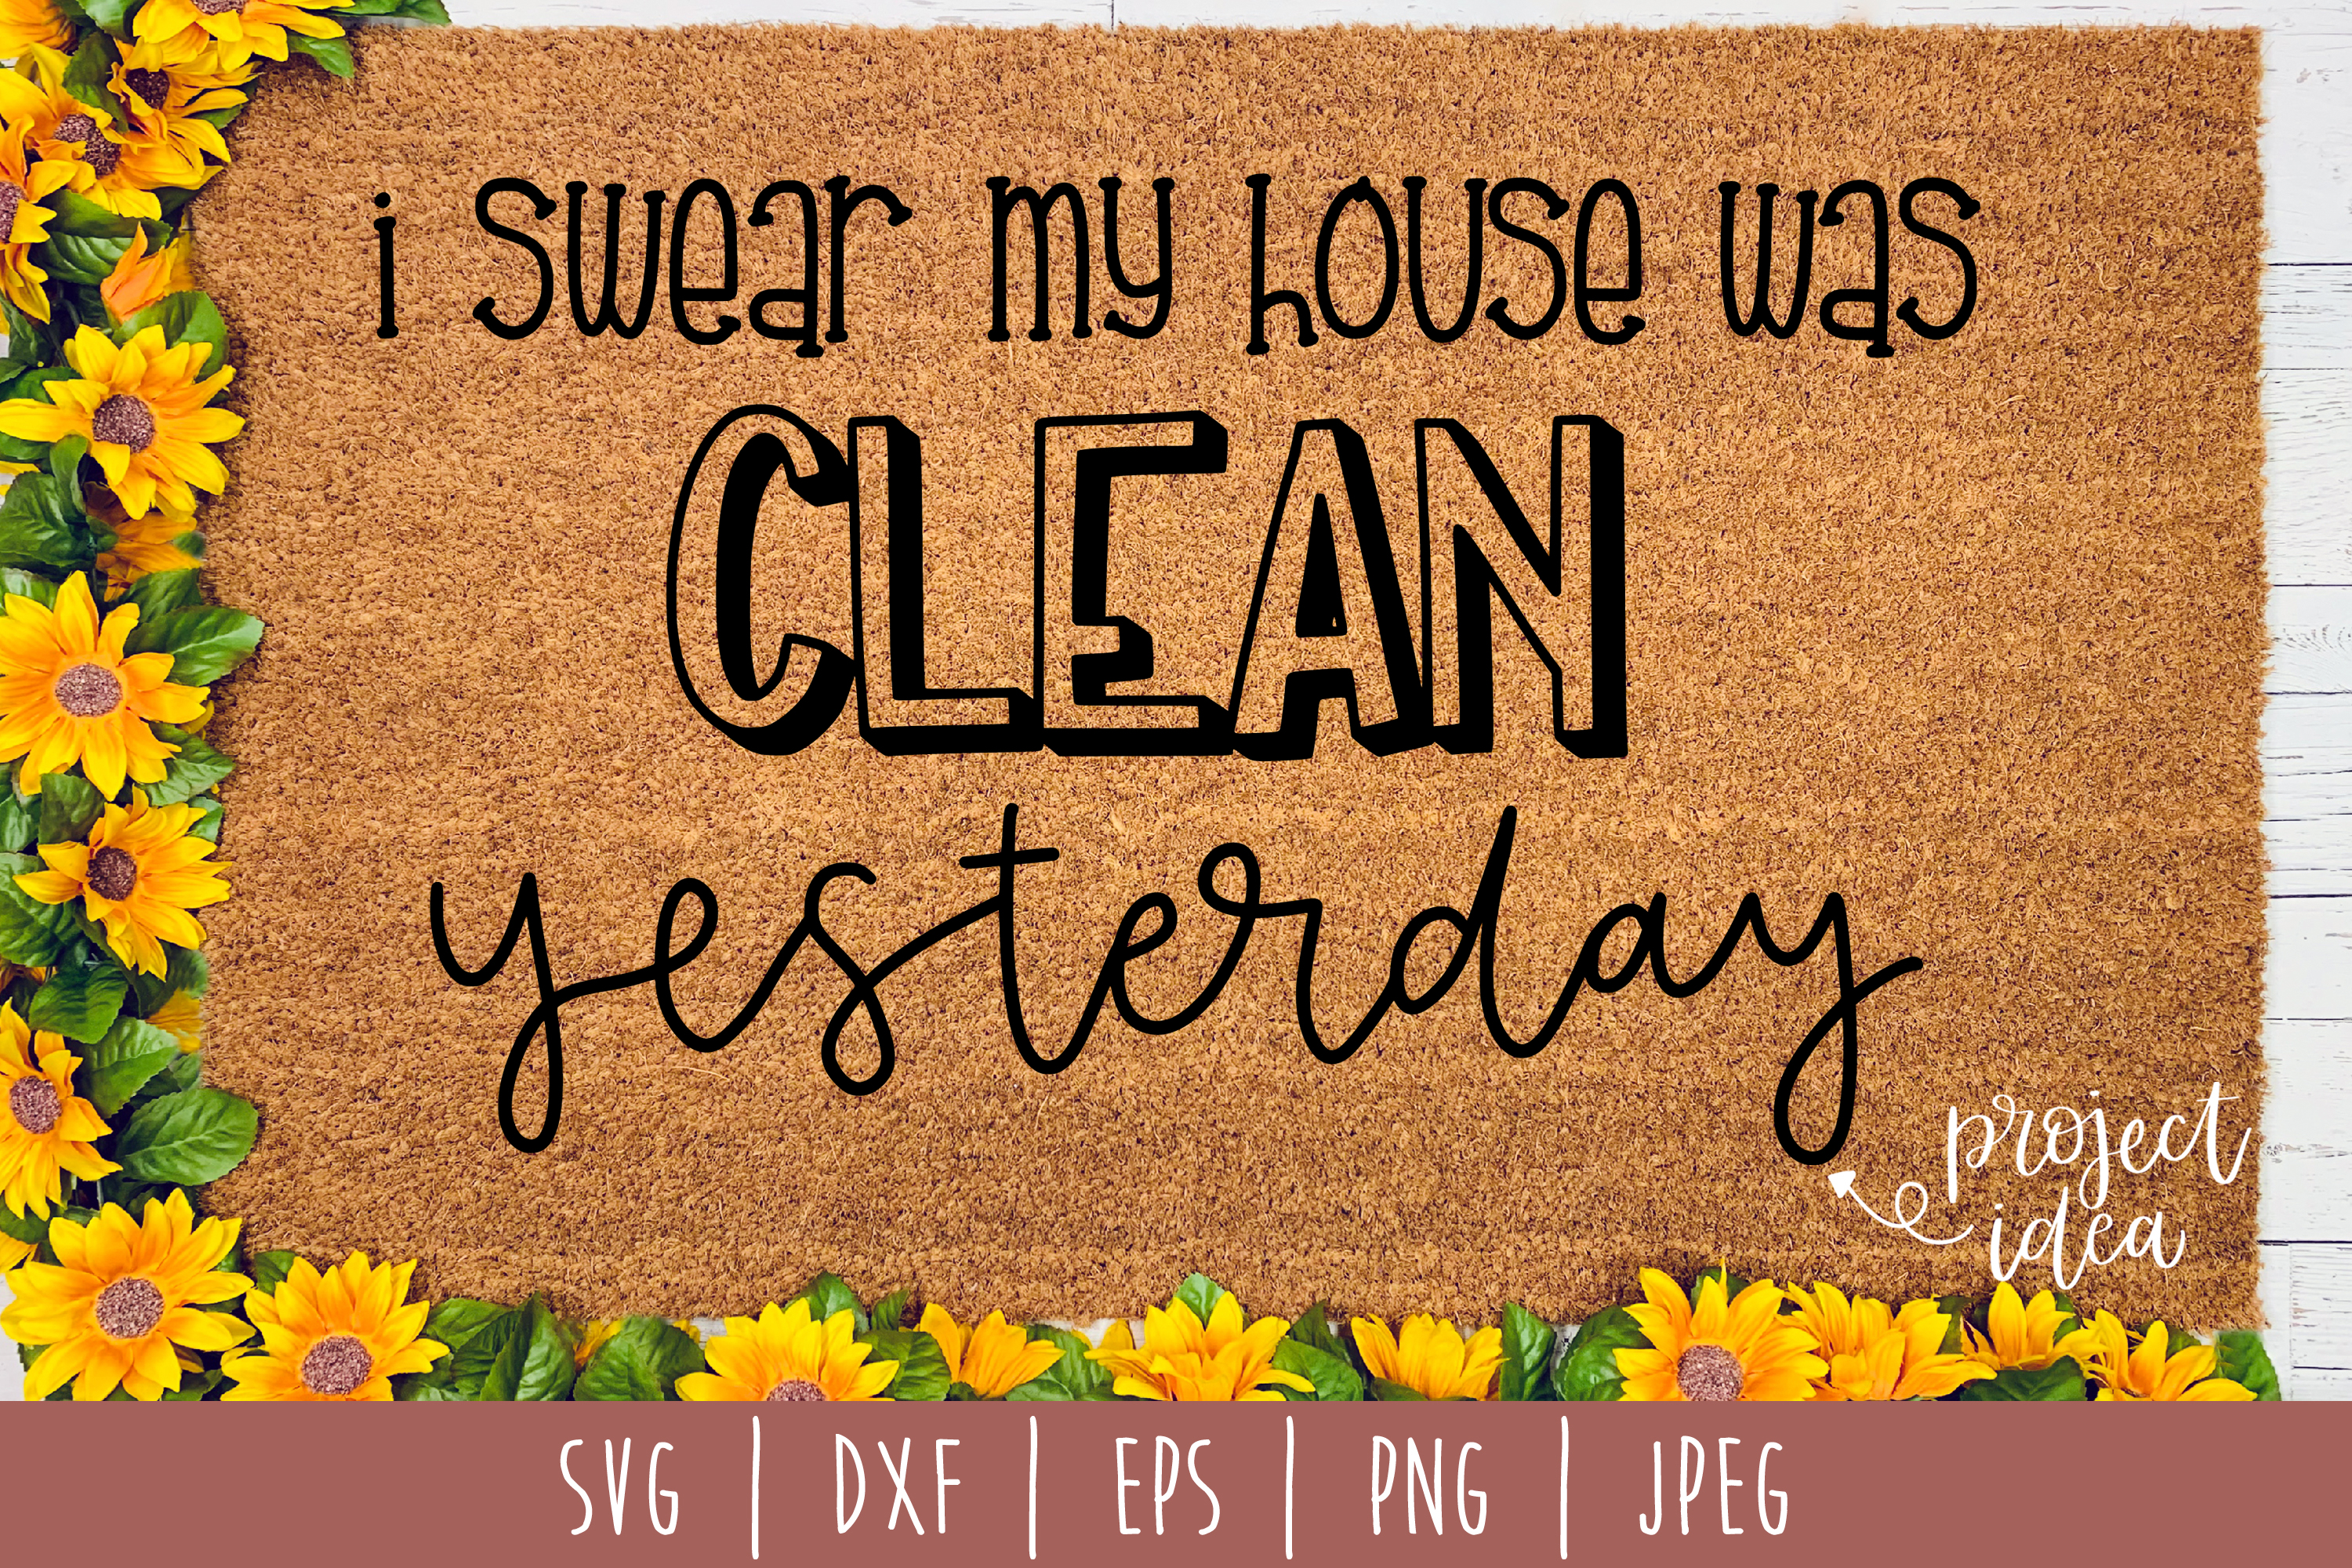 I Swear My House Was Clean Doormat SVG, DXF, EPS, PNG JPEG example image 1